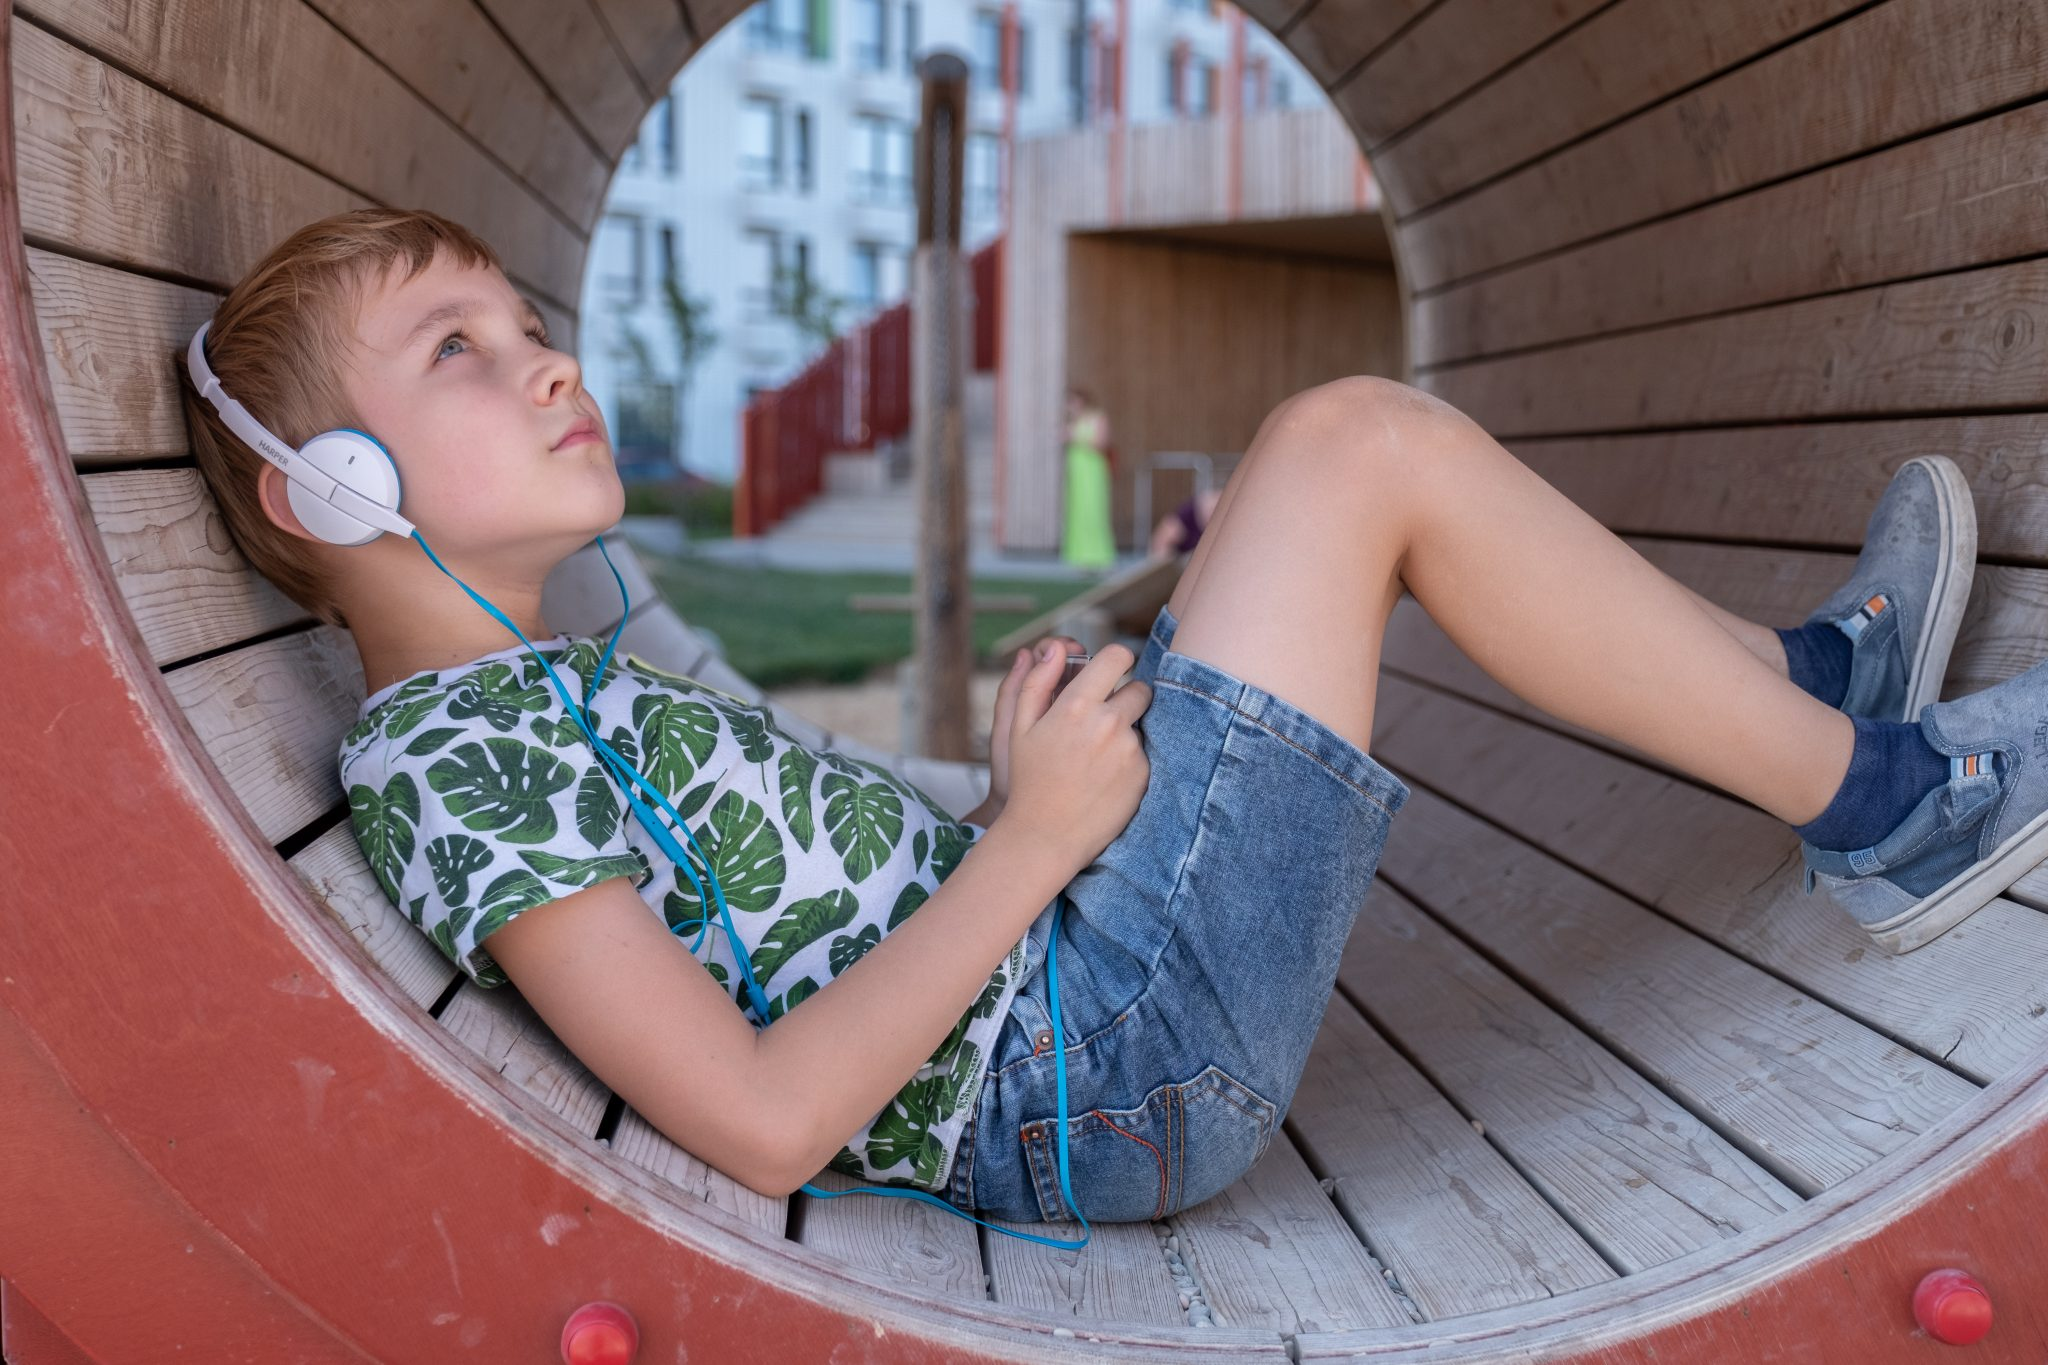 Smiling boy with smartphone and headphones listening to music or playing game outdoor